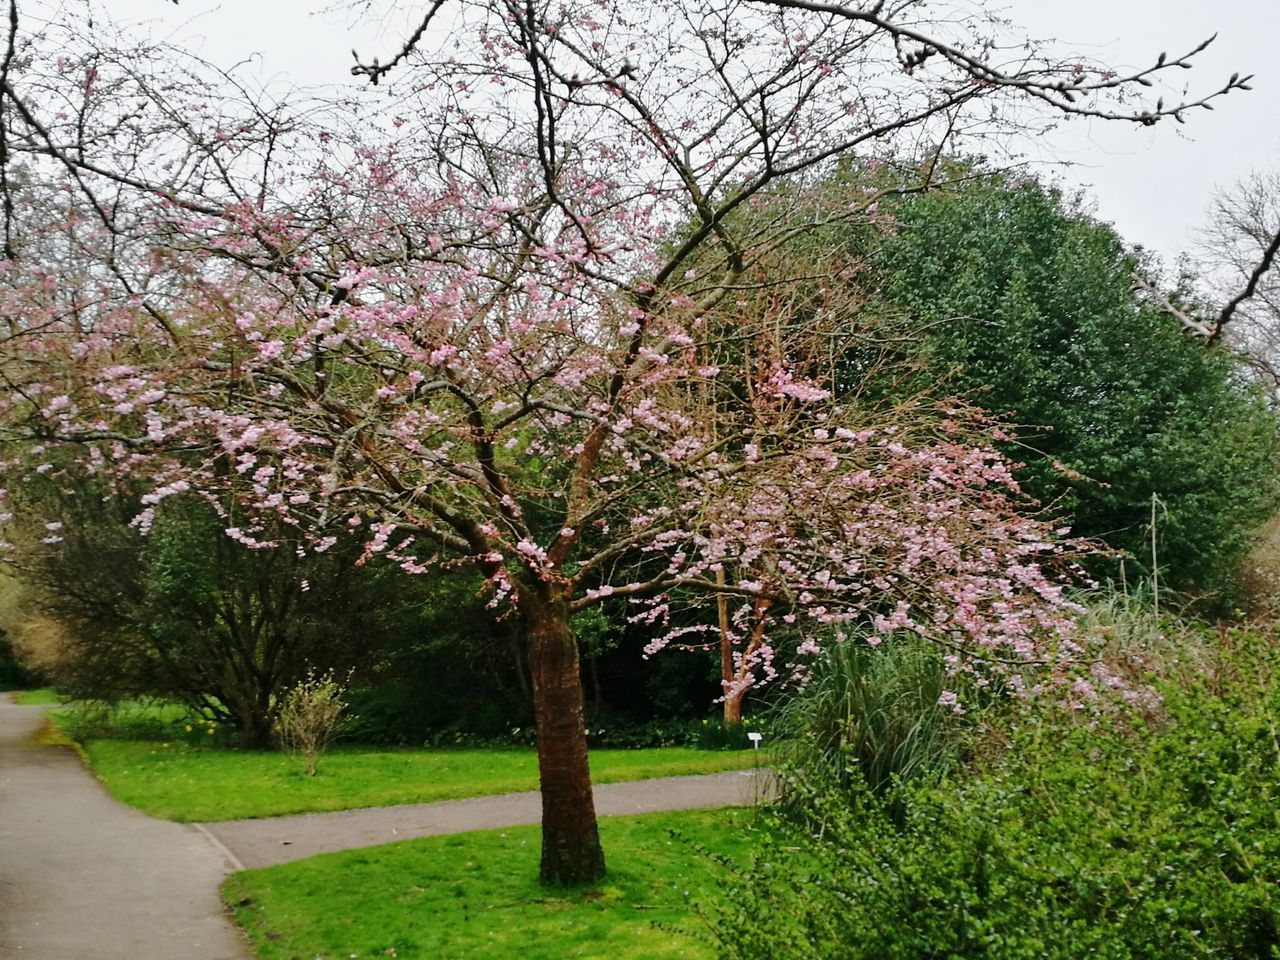 tree, growth, flower, nature, blossom, beauty in nature, branch, no people, tranquility, springtime, grass, outdoors, plant, freshness, day, fragility, scenics, sky